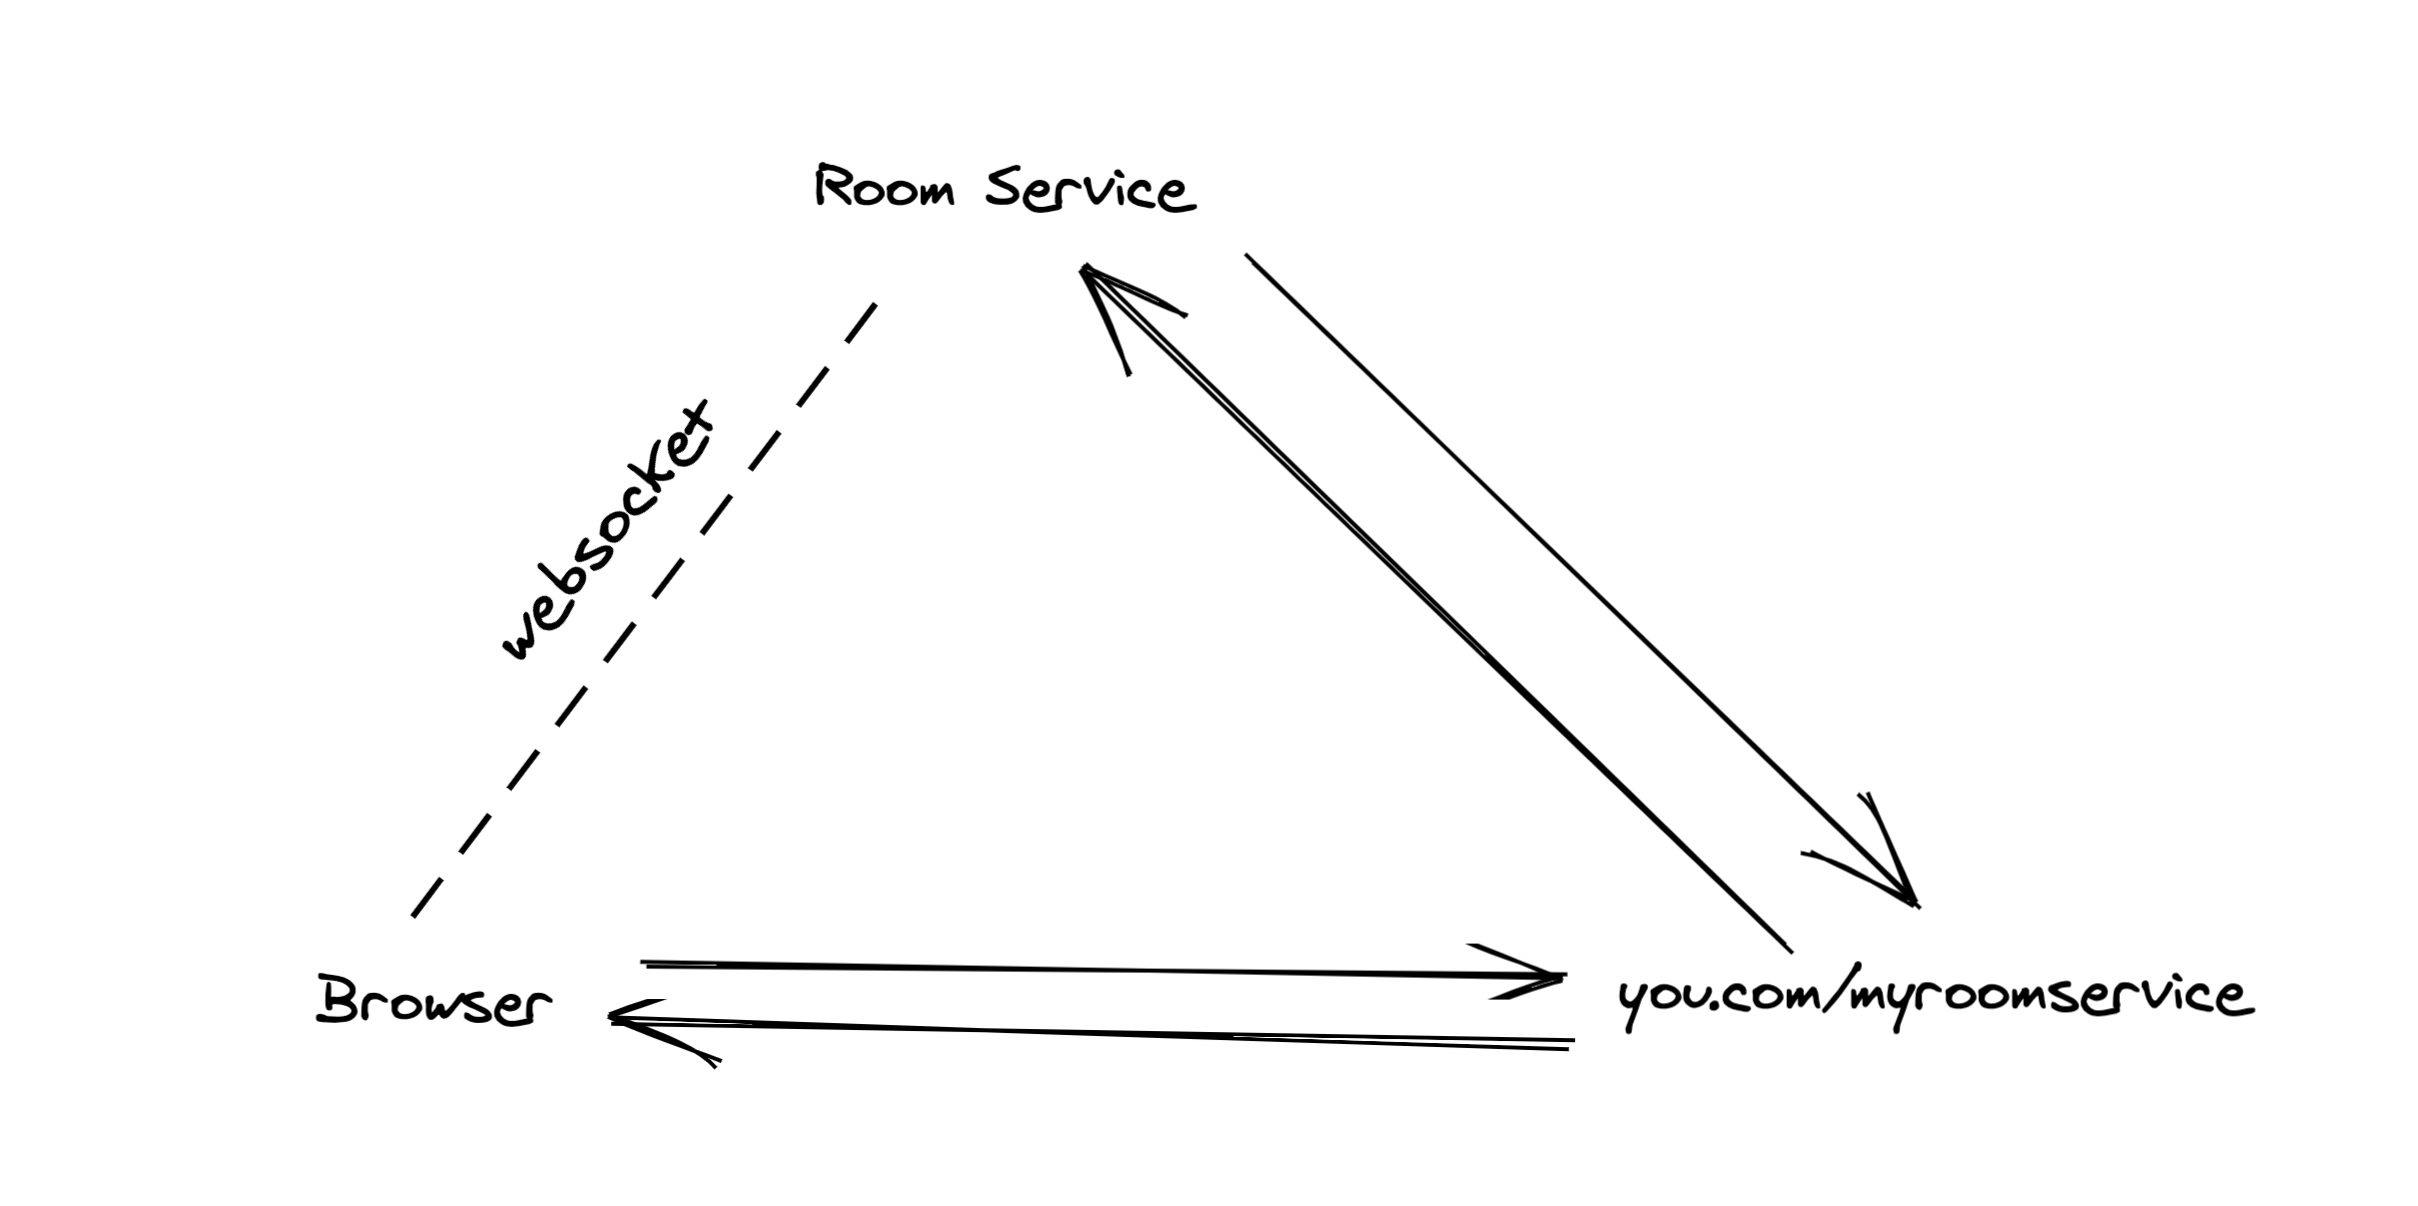 A diagram showing Room Service's servers, your servers, and the user's browser in a triangle. The browser sends a message to your server, which forwards it to Room Service's servers, along with an API key. Room Service's servers respond back to your servers with a short-lived token, which you then pass back to the browser. Then the browser opens a WebSocket connection to Room Service's servers.